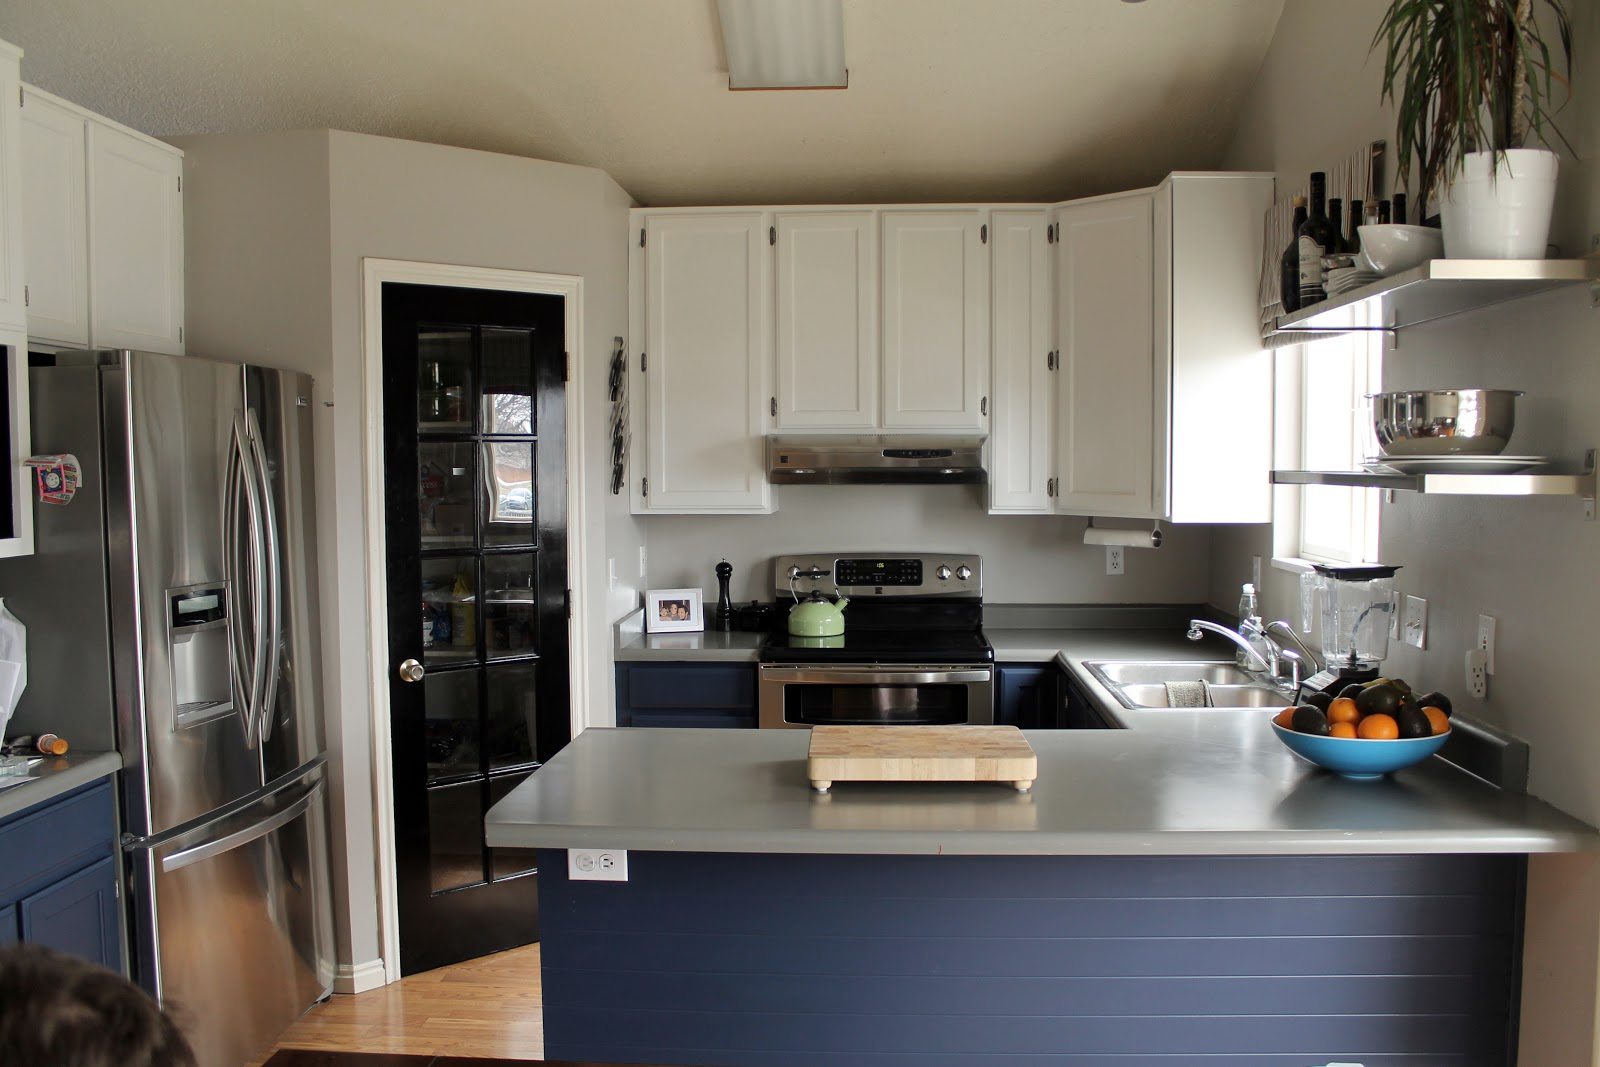 Navy Painted Base Cabinets - Chris Loves Julia